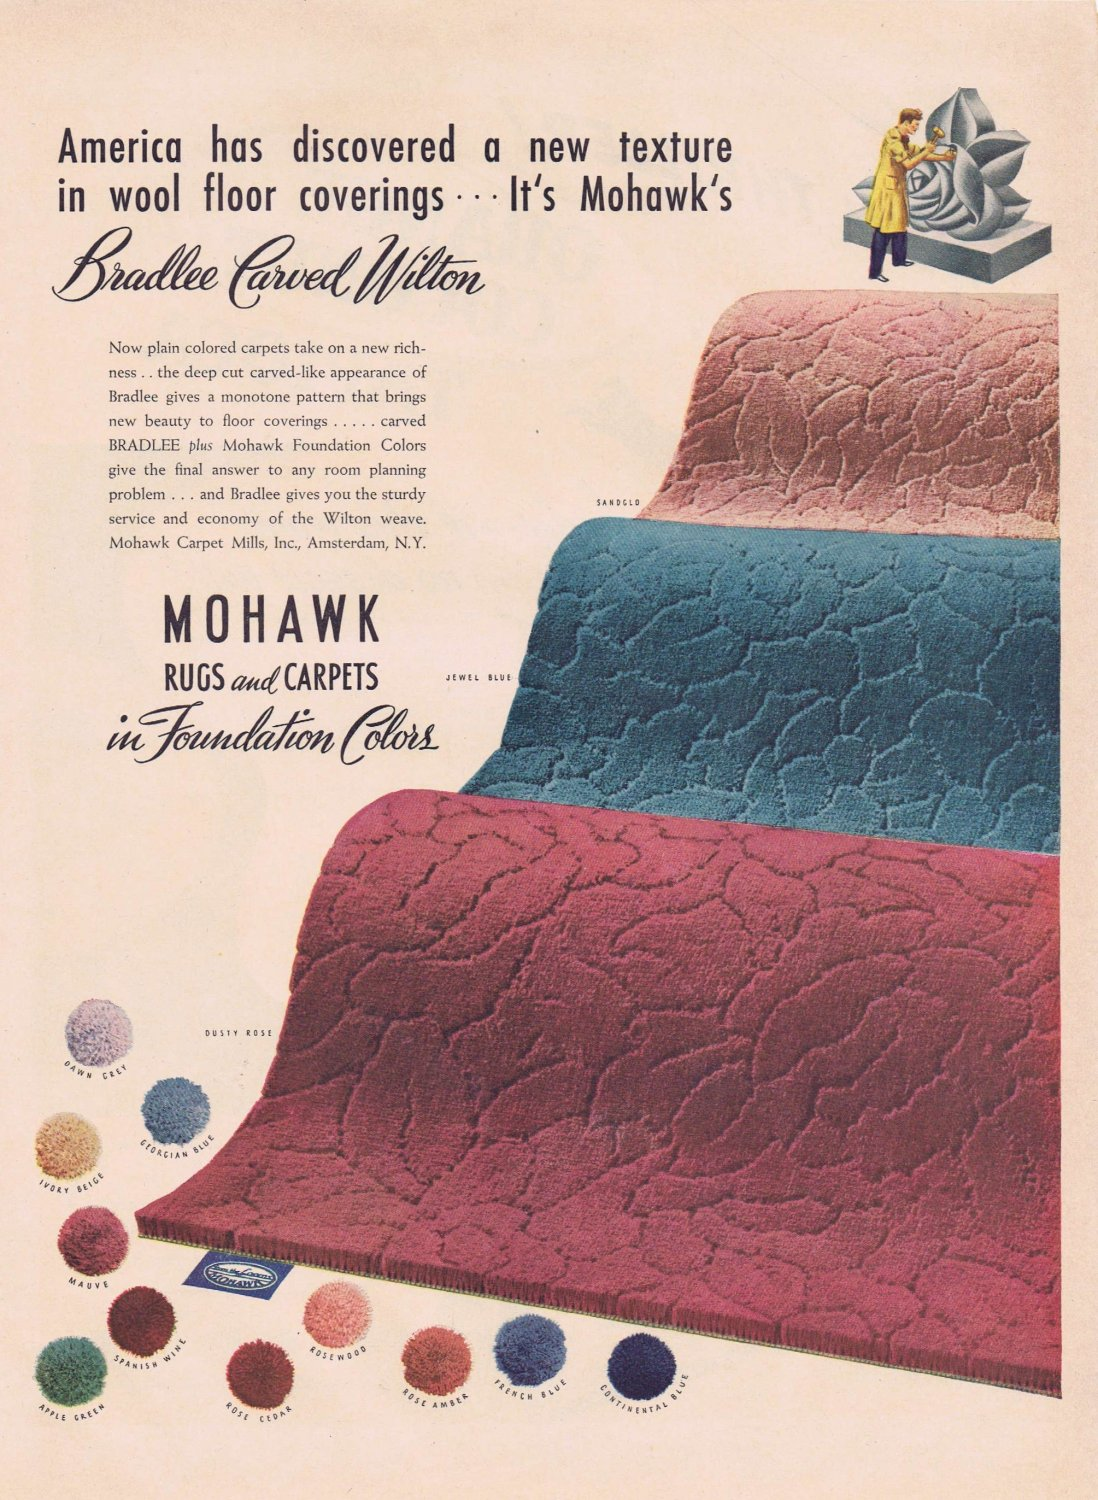 1943 Mohawk Rugs and Carpet WW2 Era Original Vintage Advertisement Raleigh Lustre-Carved Wilton